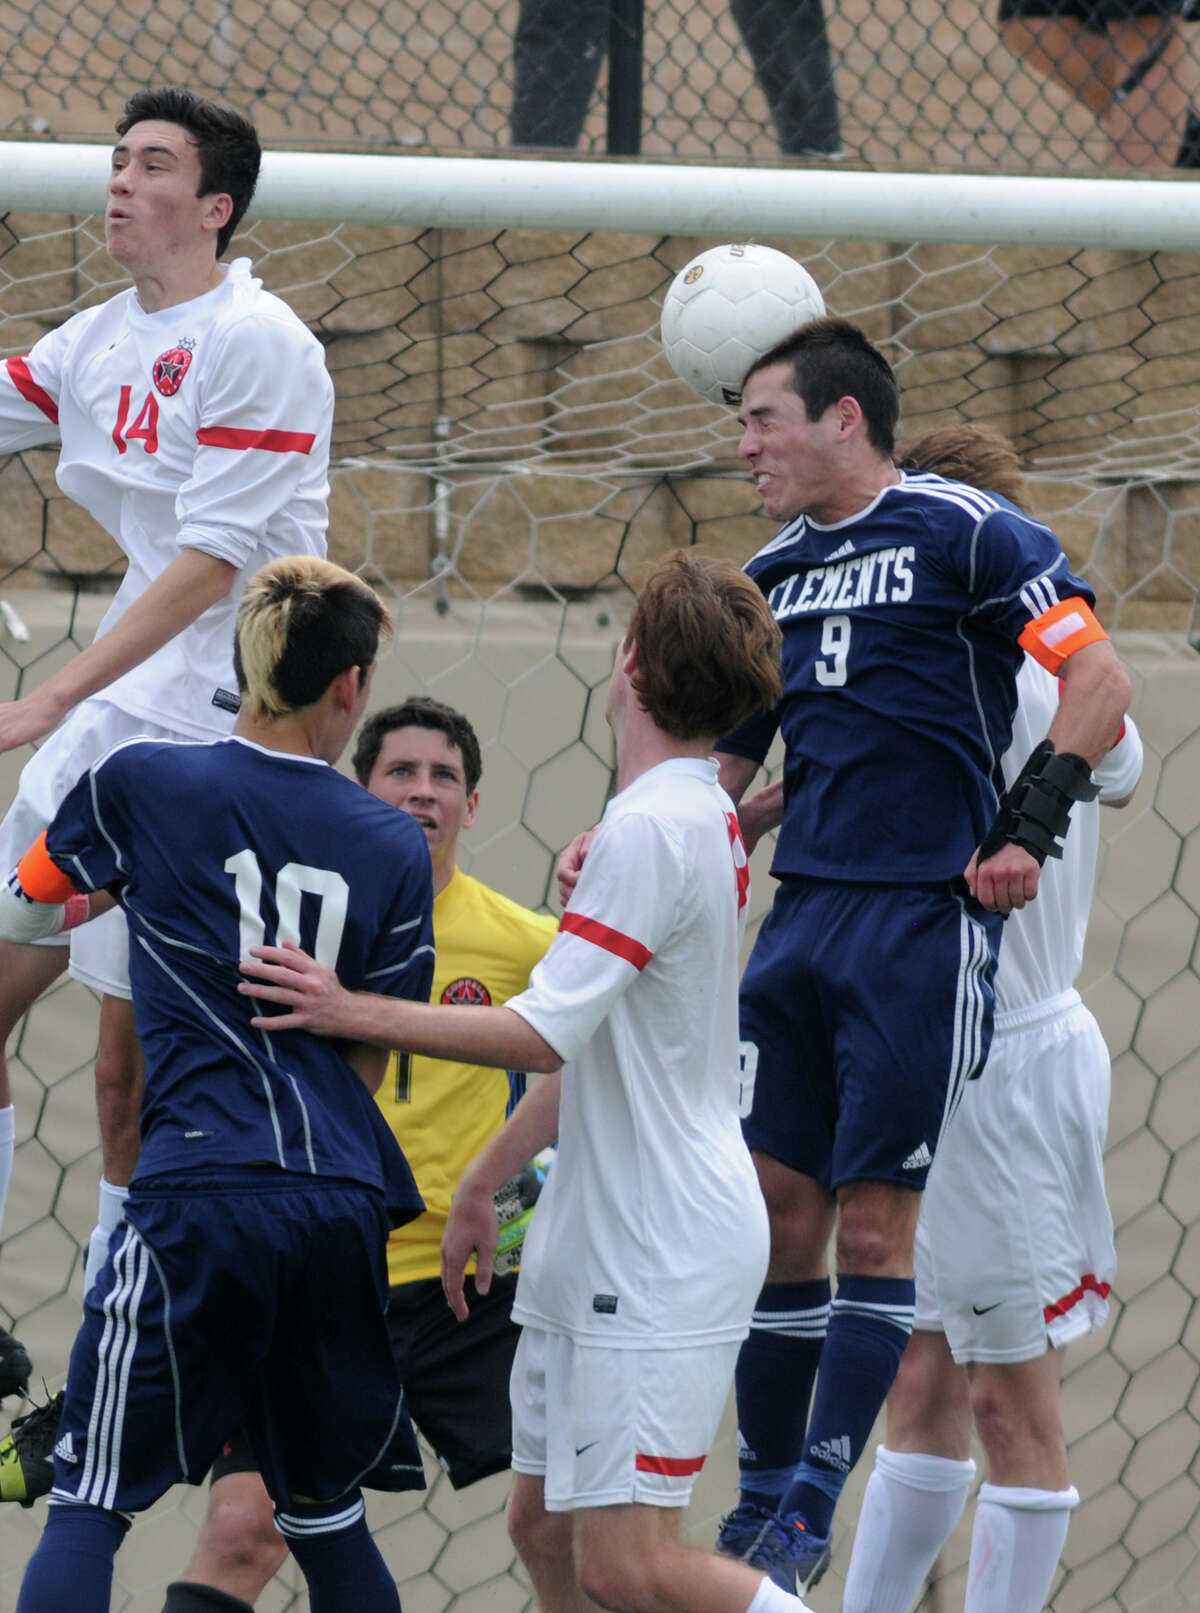 Clements senior midfielder Santiago Padruno (9) gives the Rangers the lead with his header in the 20th minute. Alejandro Saez and Trinidad Luna added goals in the second half for Clements in its 3-0 win over Coppell.